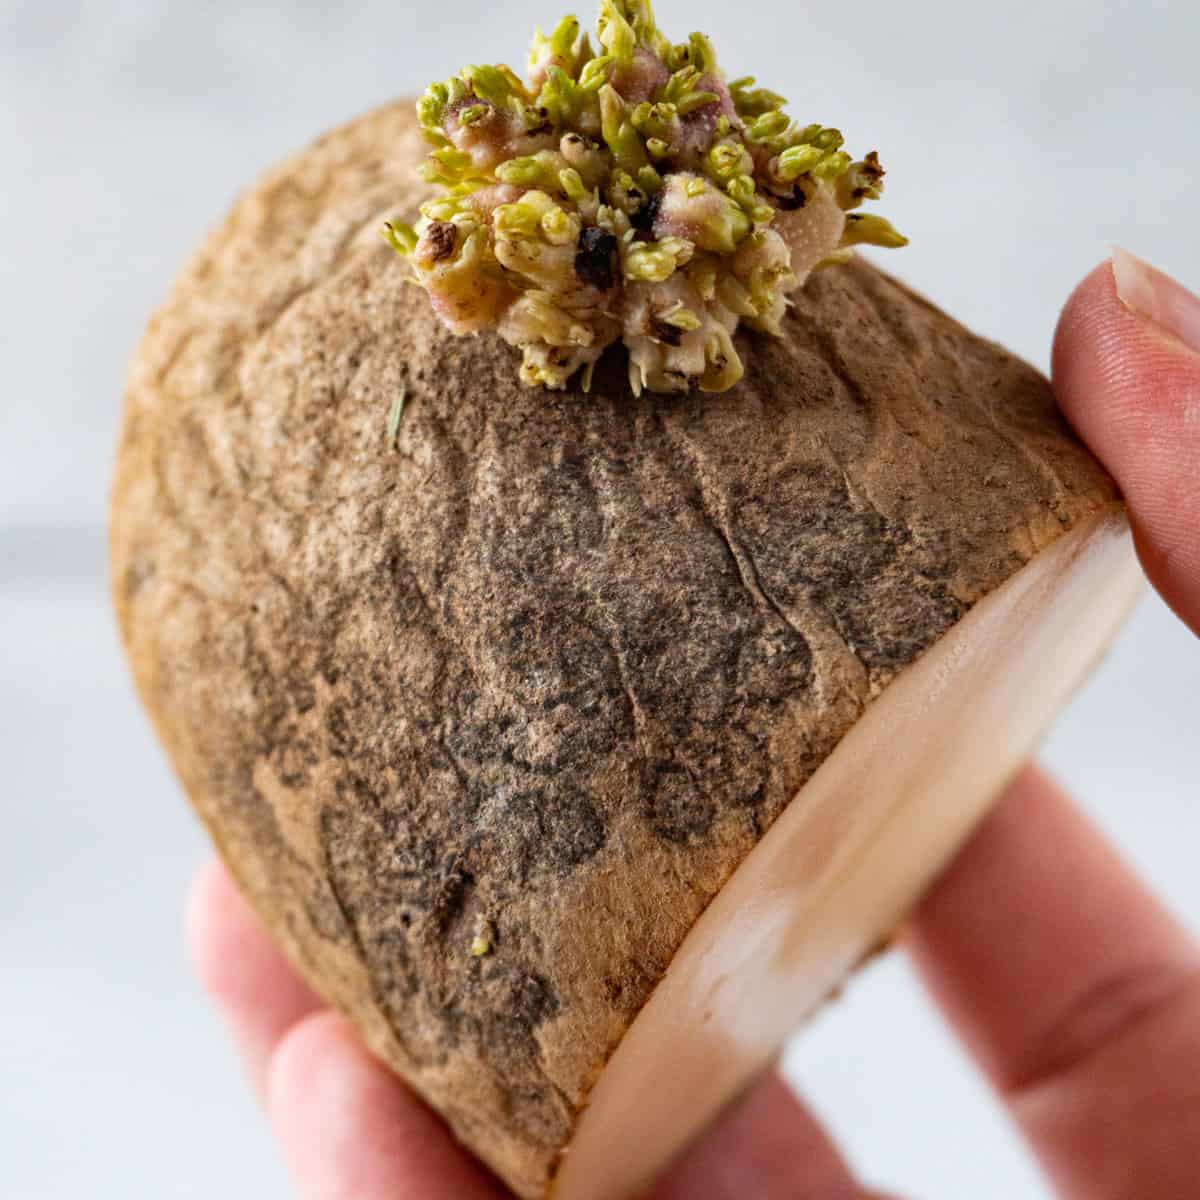 bad potato held in hand featured image